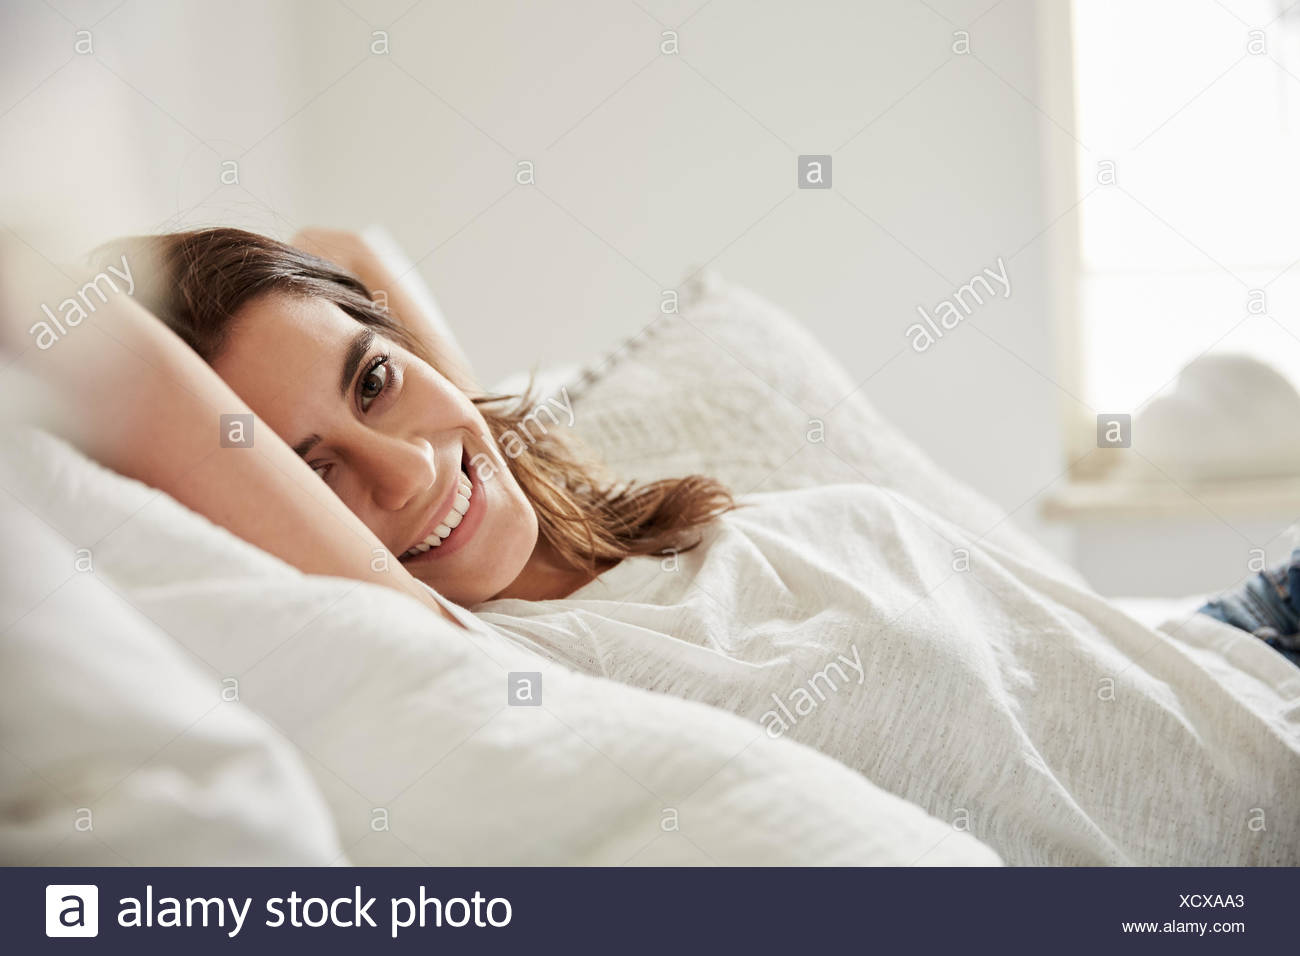 Surface level portrait of beautiful young woman lying on bed - Stock Image